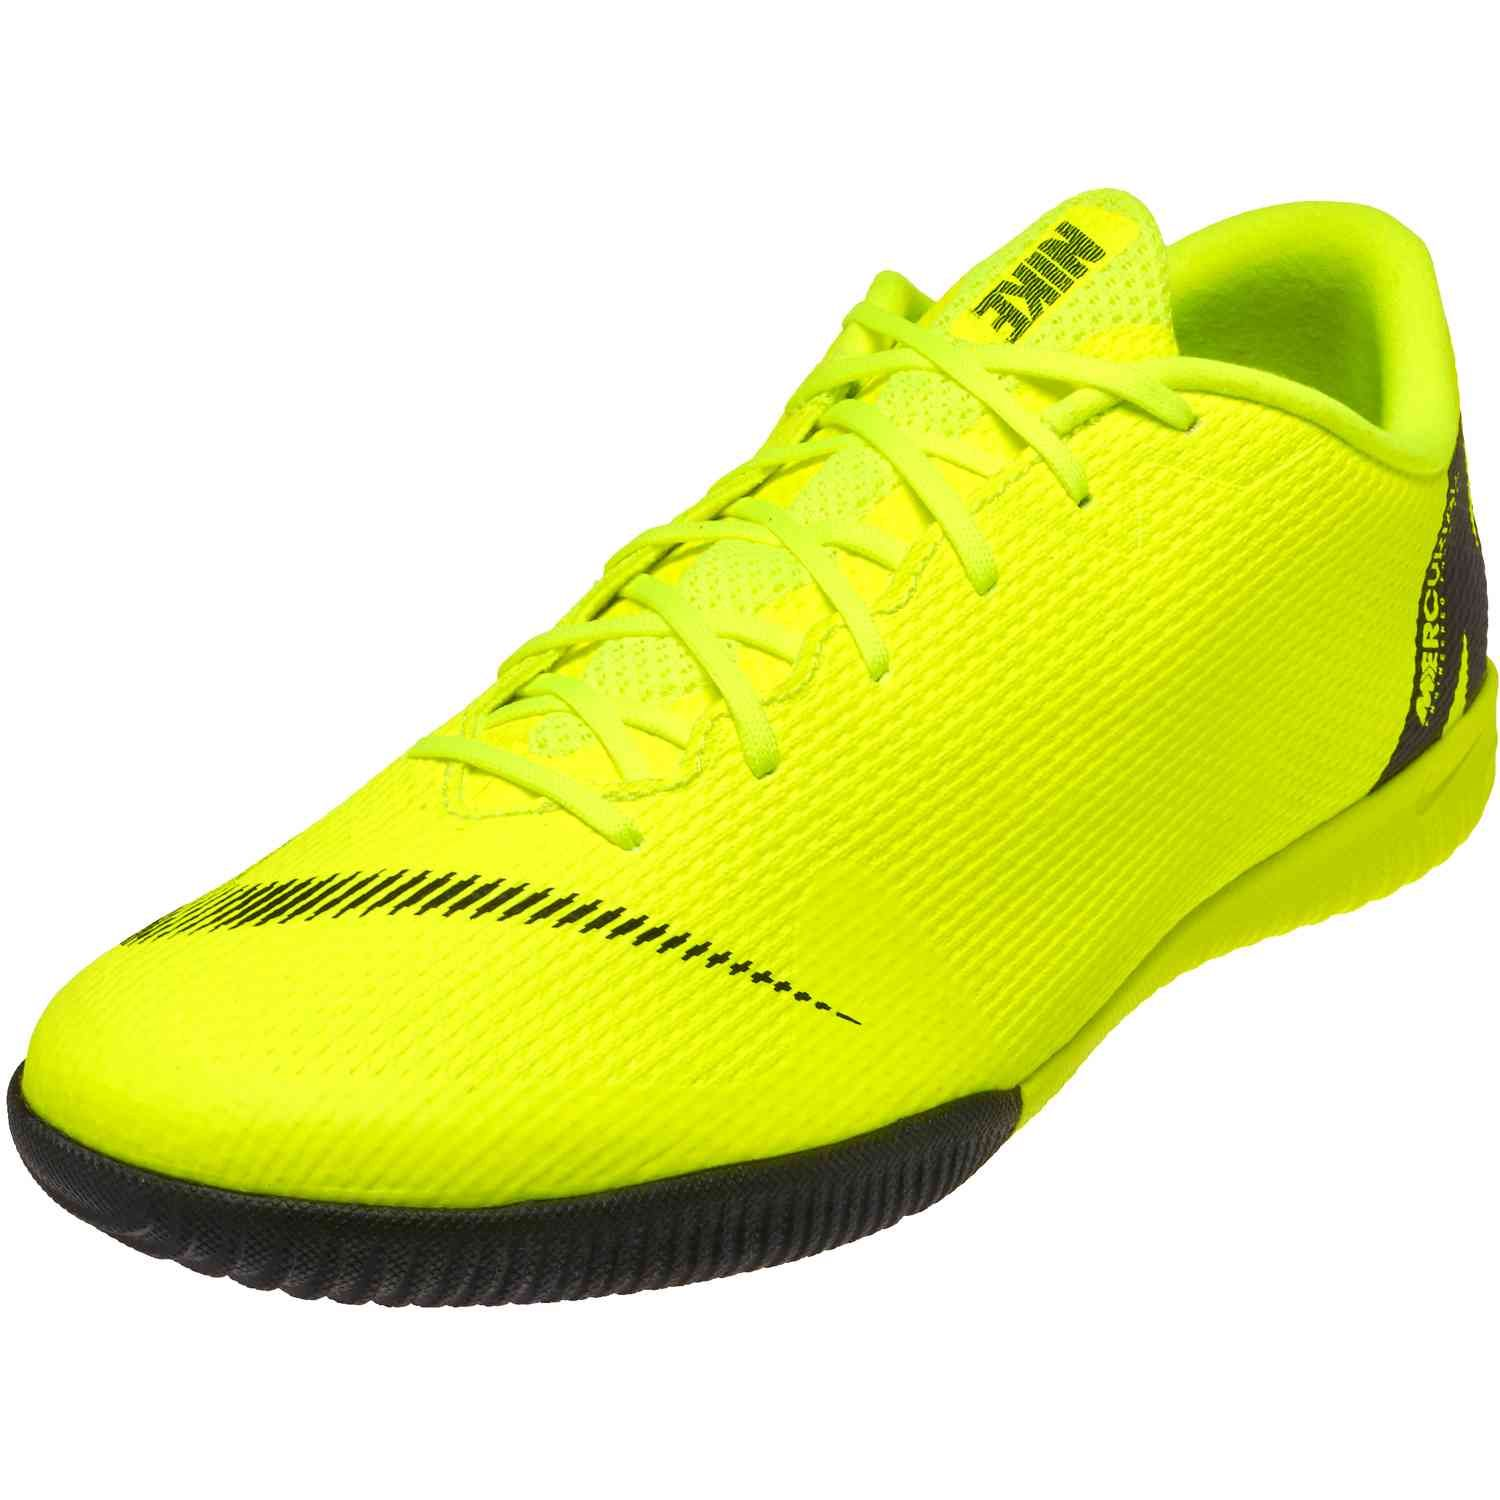 66e1e8d7 Buy the Nike Mercurial VaporX 12 Academy Indoor Soccer Shoes from SoccerPro  right now.